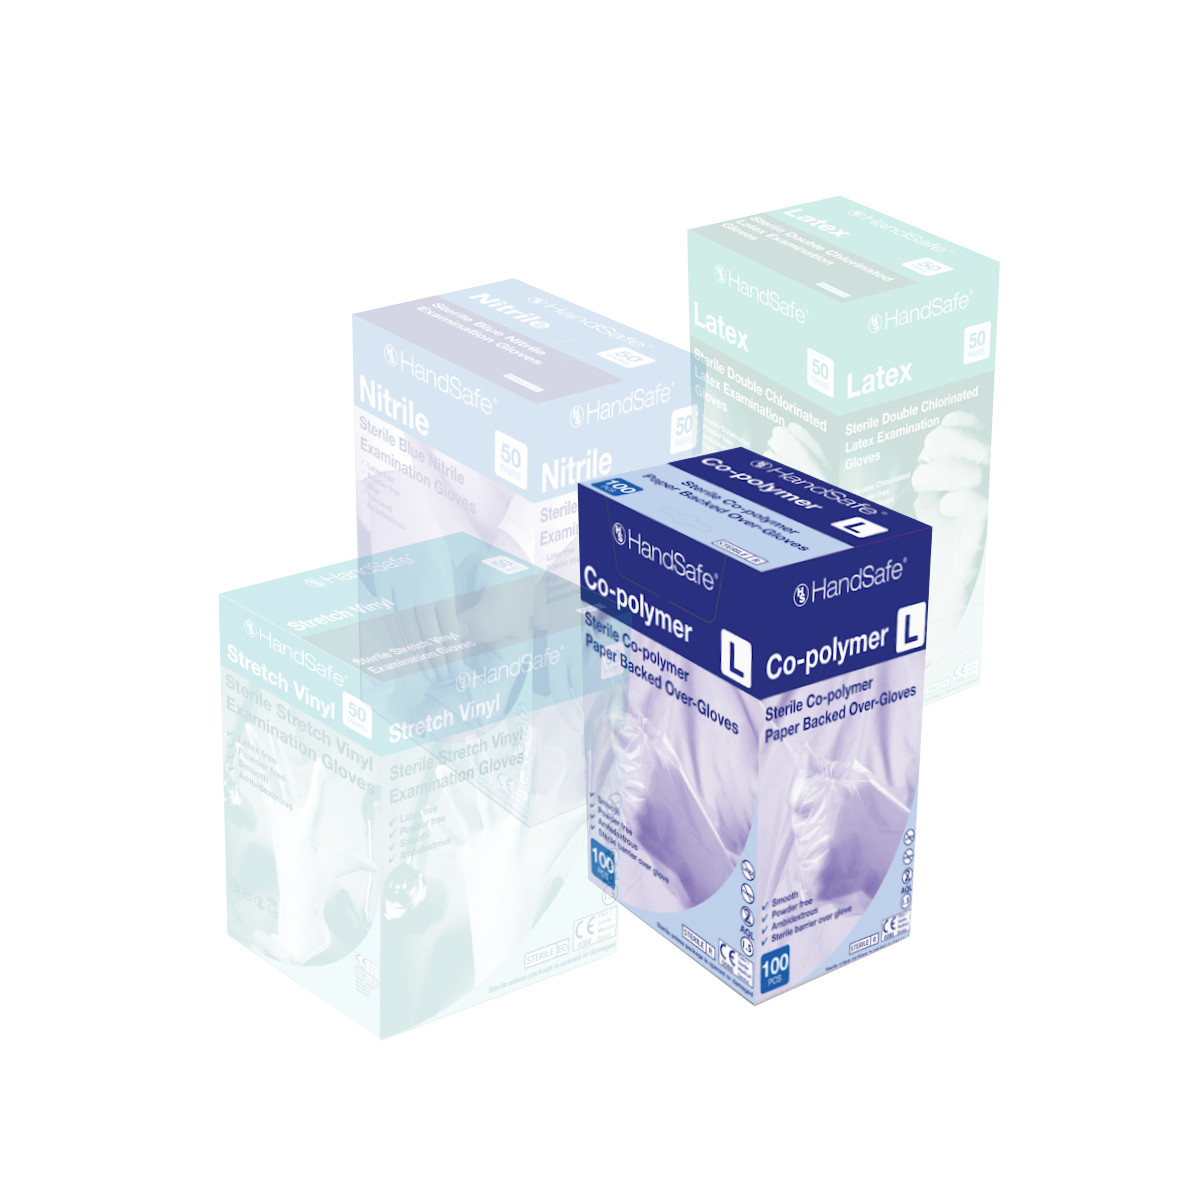 Sterile Co-Polymer Examination Gloves